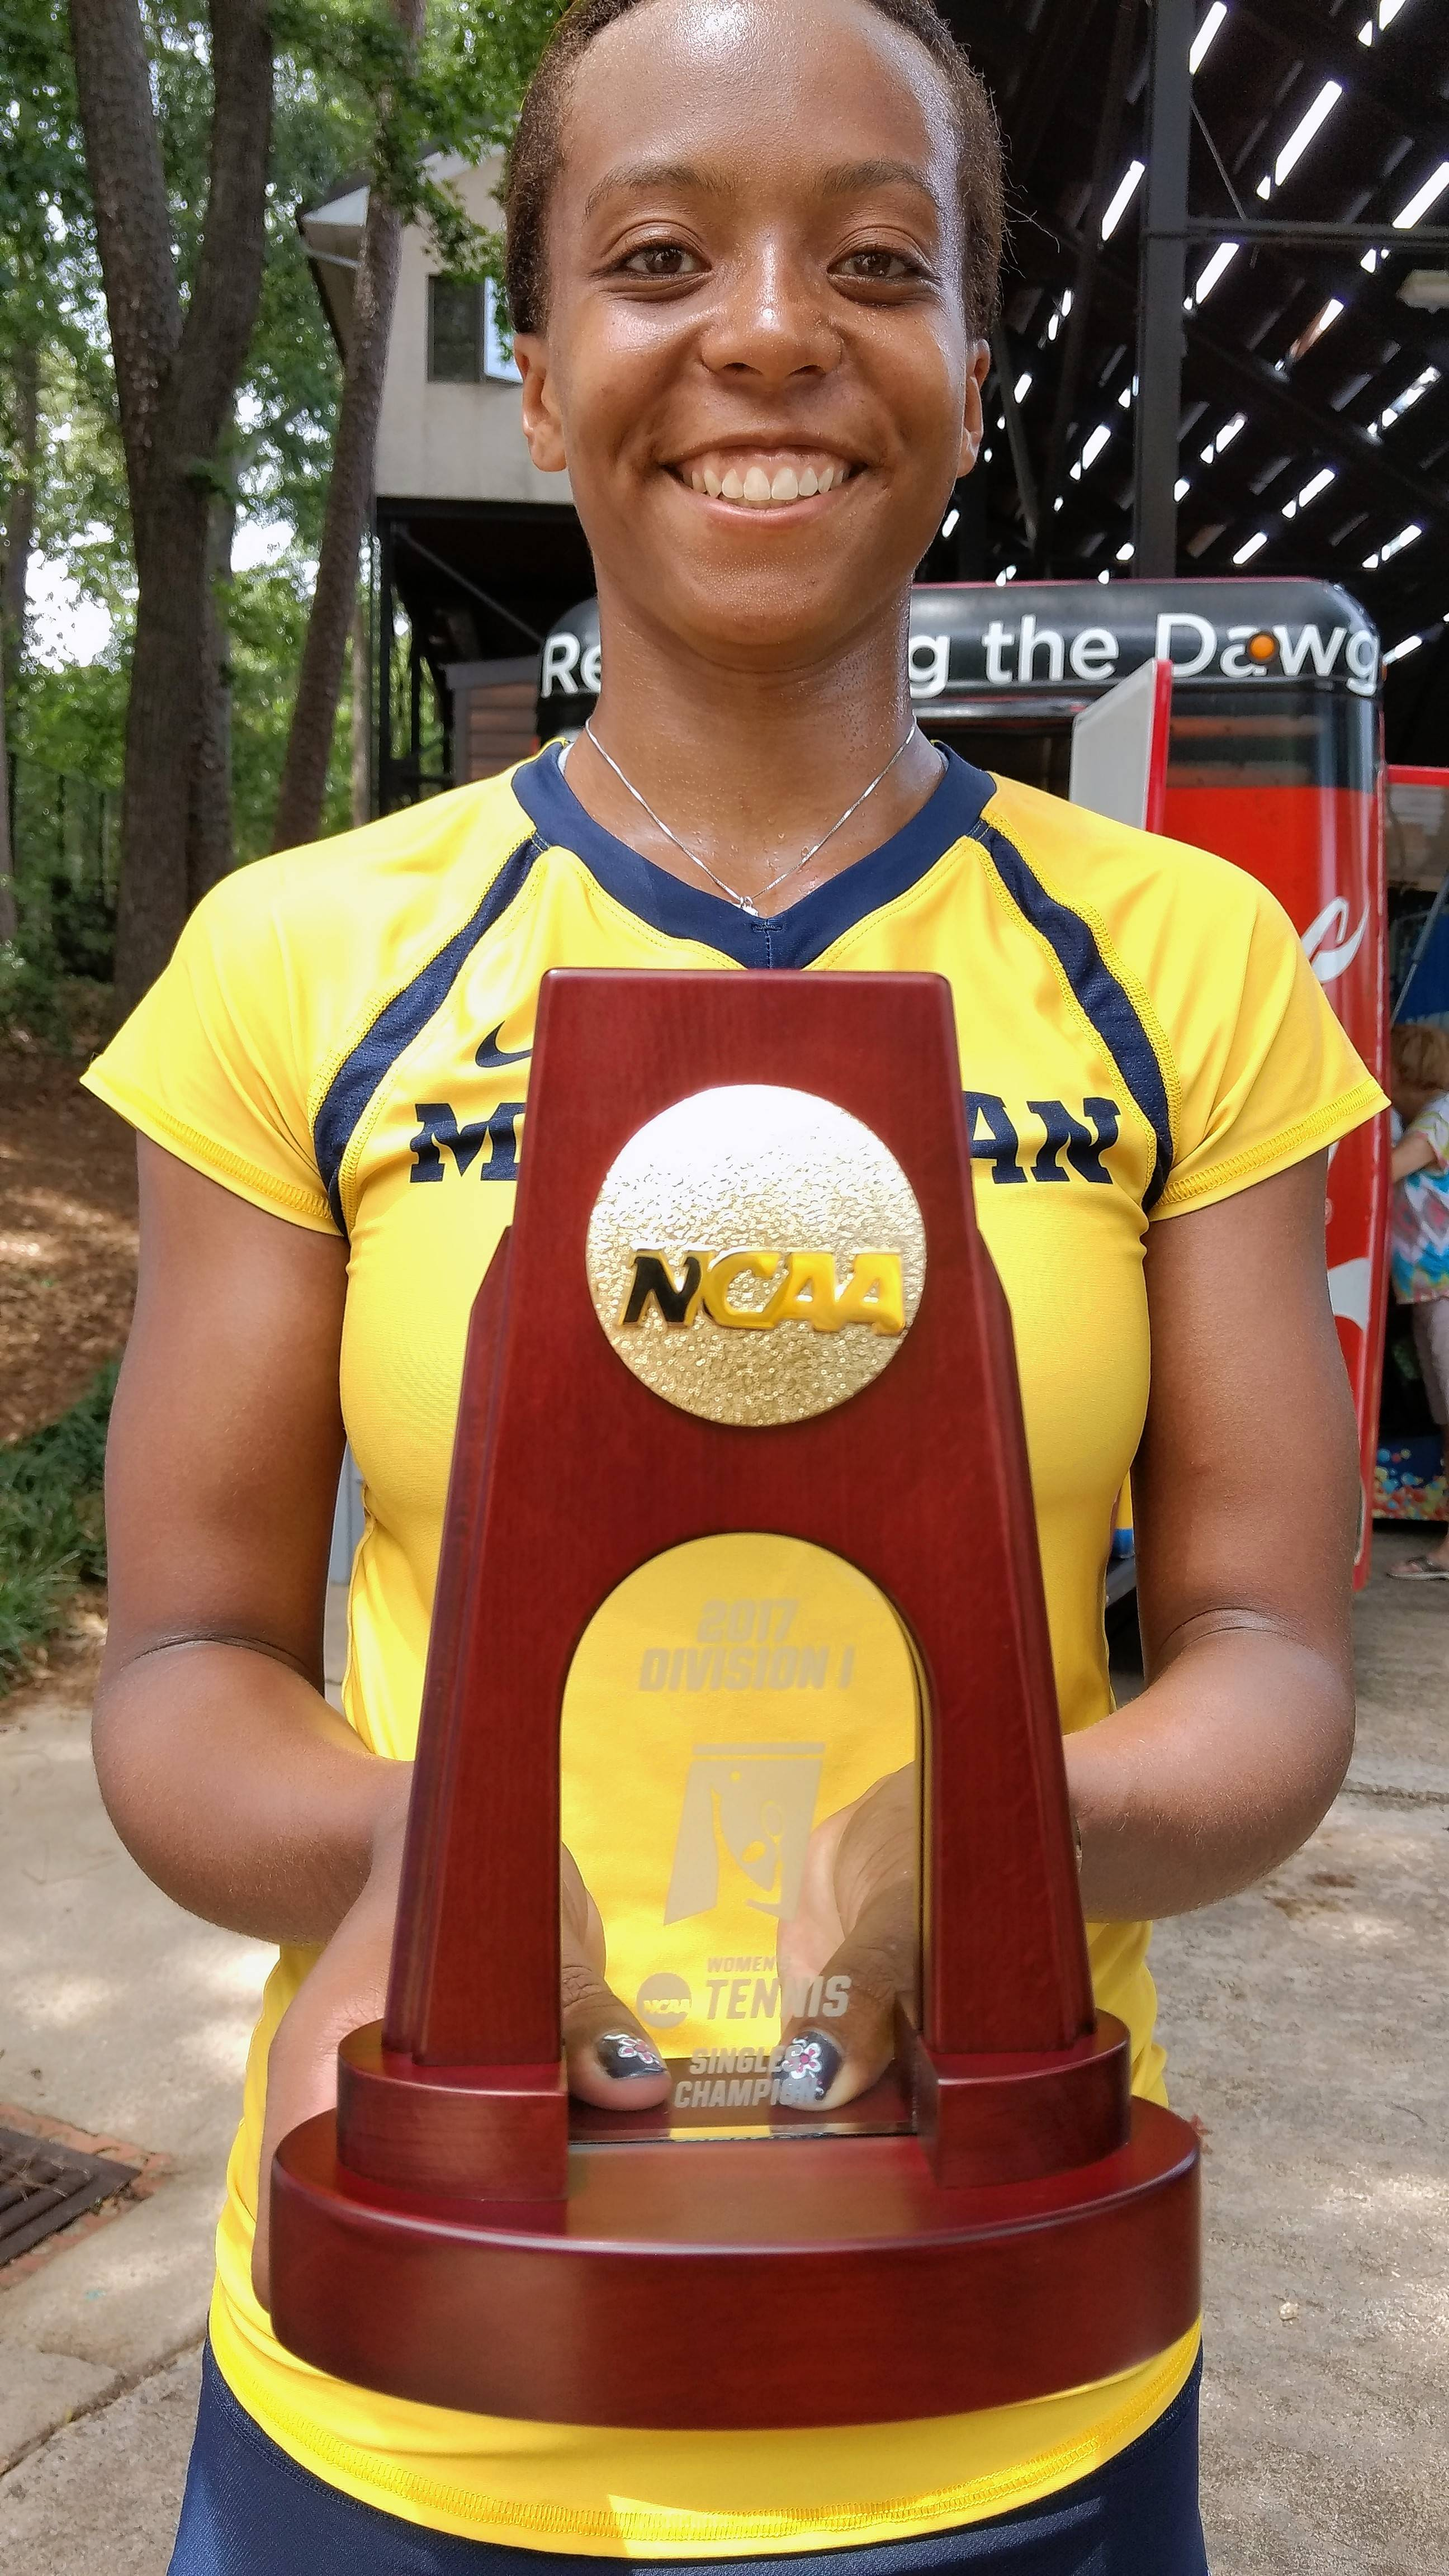 Michigan sophomore tennis player Brienne Minor, a Mundelein native, displays the NCAA Championship trophy she earned in women's singles. Minor was unranked entering the tournament.